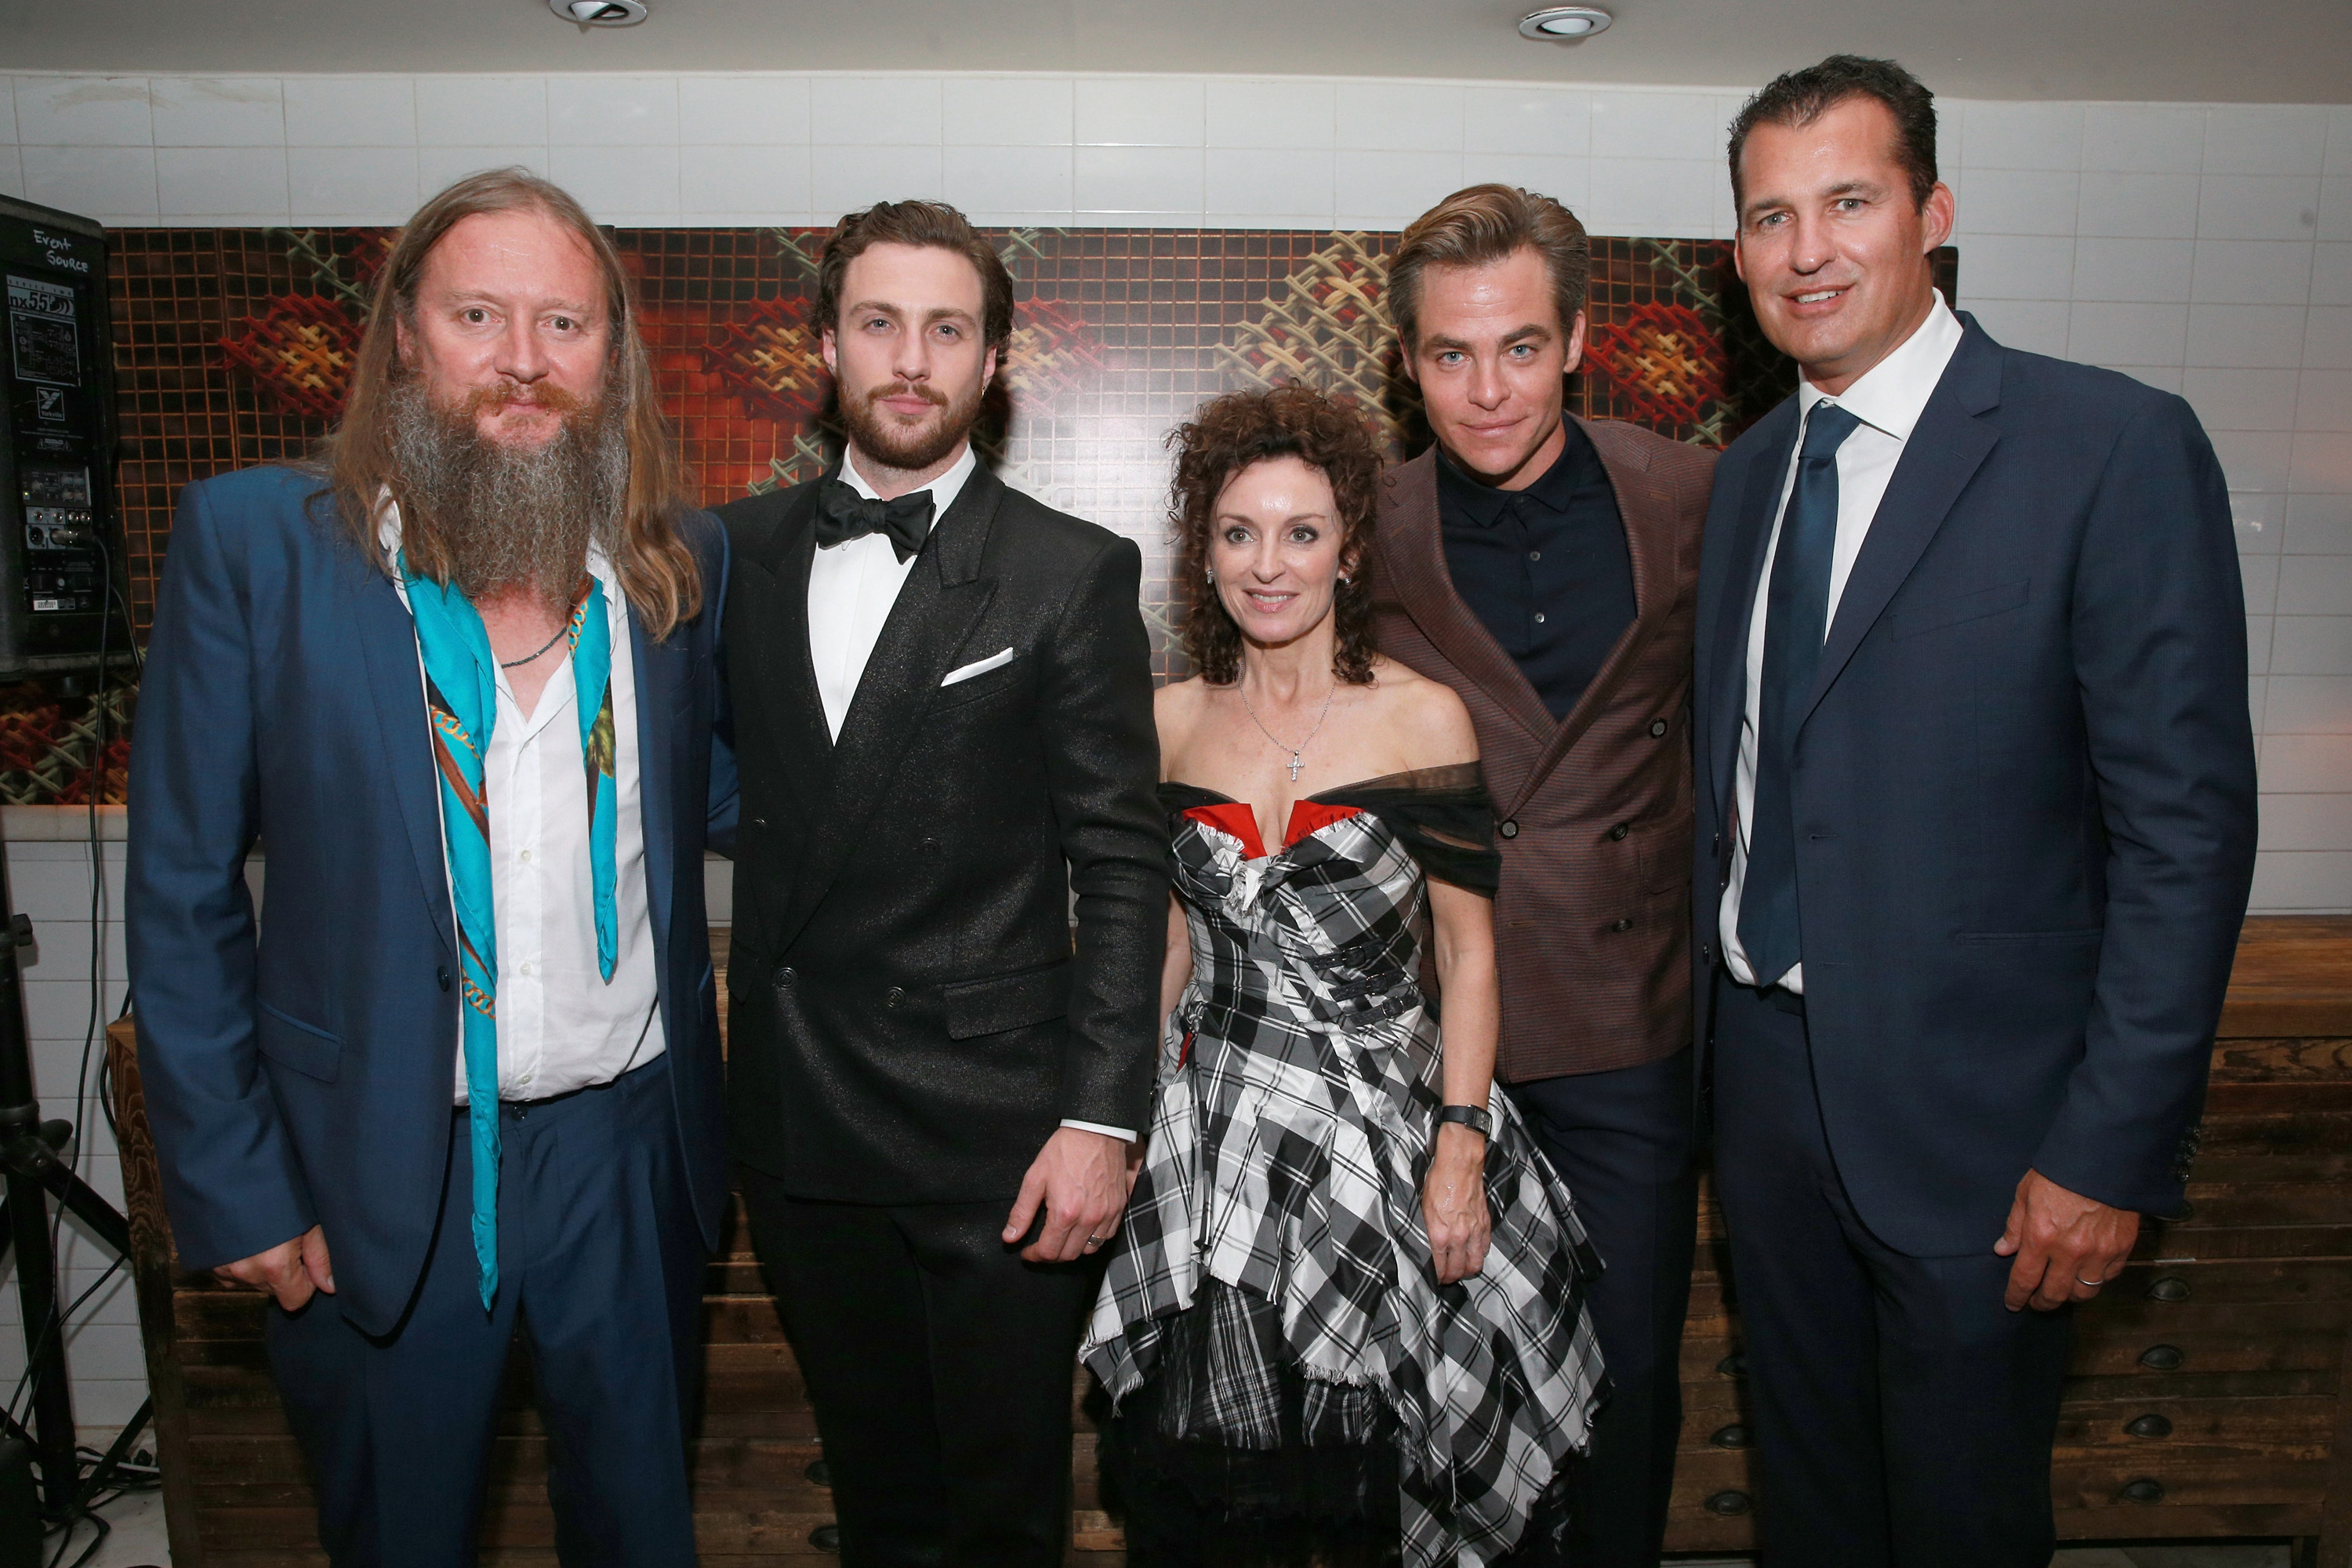 (L-R) David Mackenzie, Aaron Taylor-Johnson , Gillian Berrie, Chris Pine and Scott Stuber attend the after party for the 'Outlaw King' TIFF 2018 opening night red carpet on September 6, 2018 in Toronto, Canada.